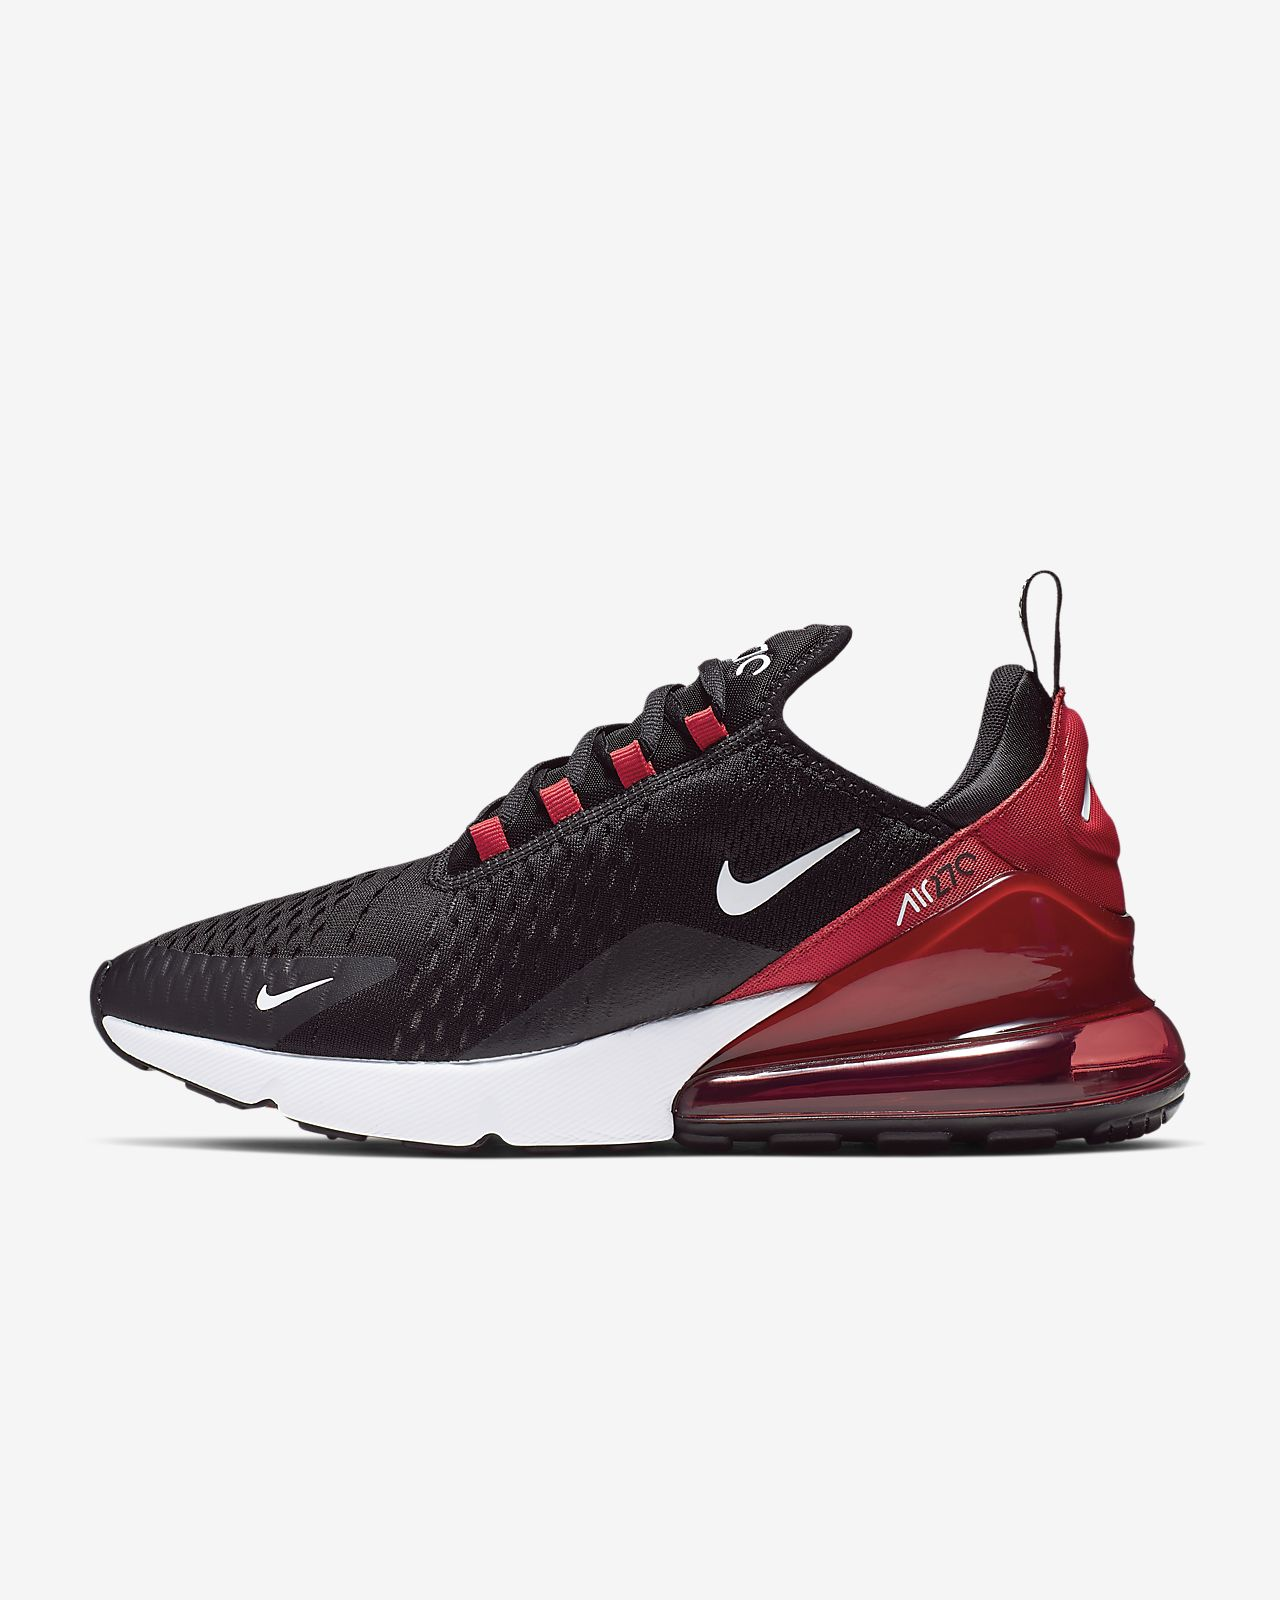 new concept 98049 c6838 ... Nike Air Max 270 Herrenschuh